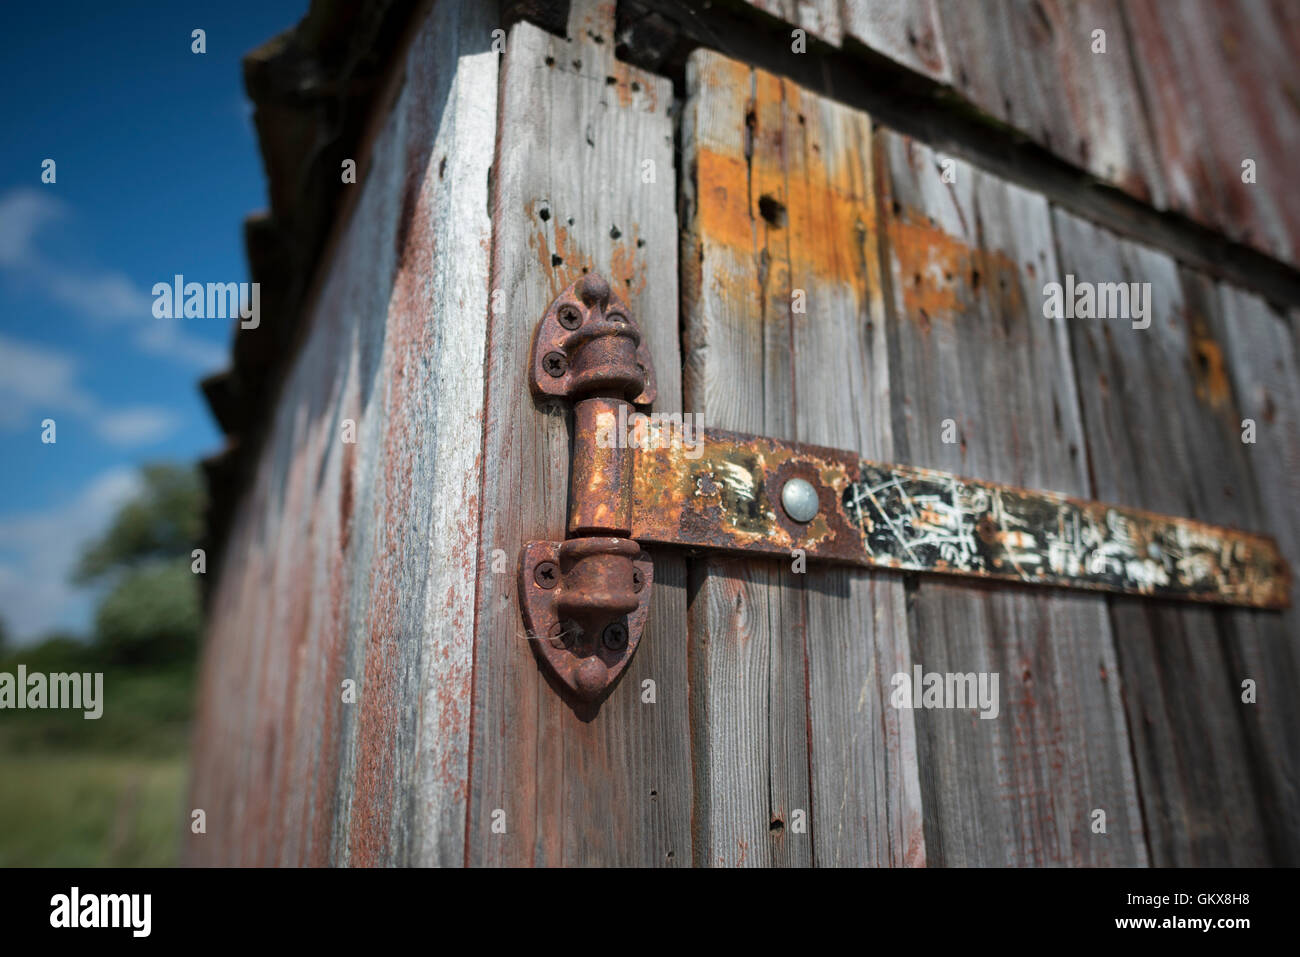 Closeup of an old rusty hinge on a boathouse - Stock Image